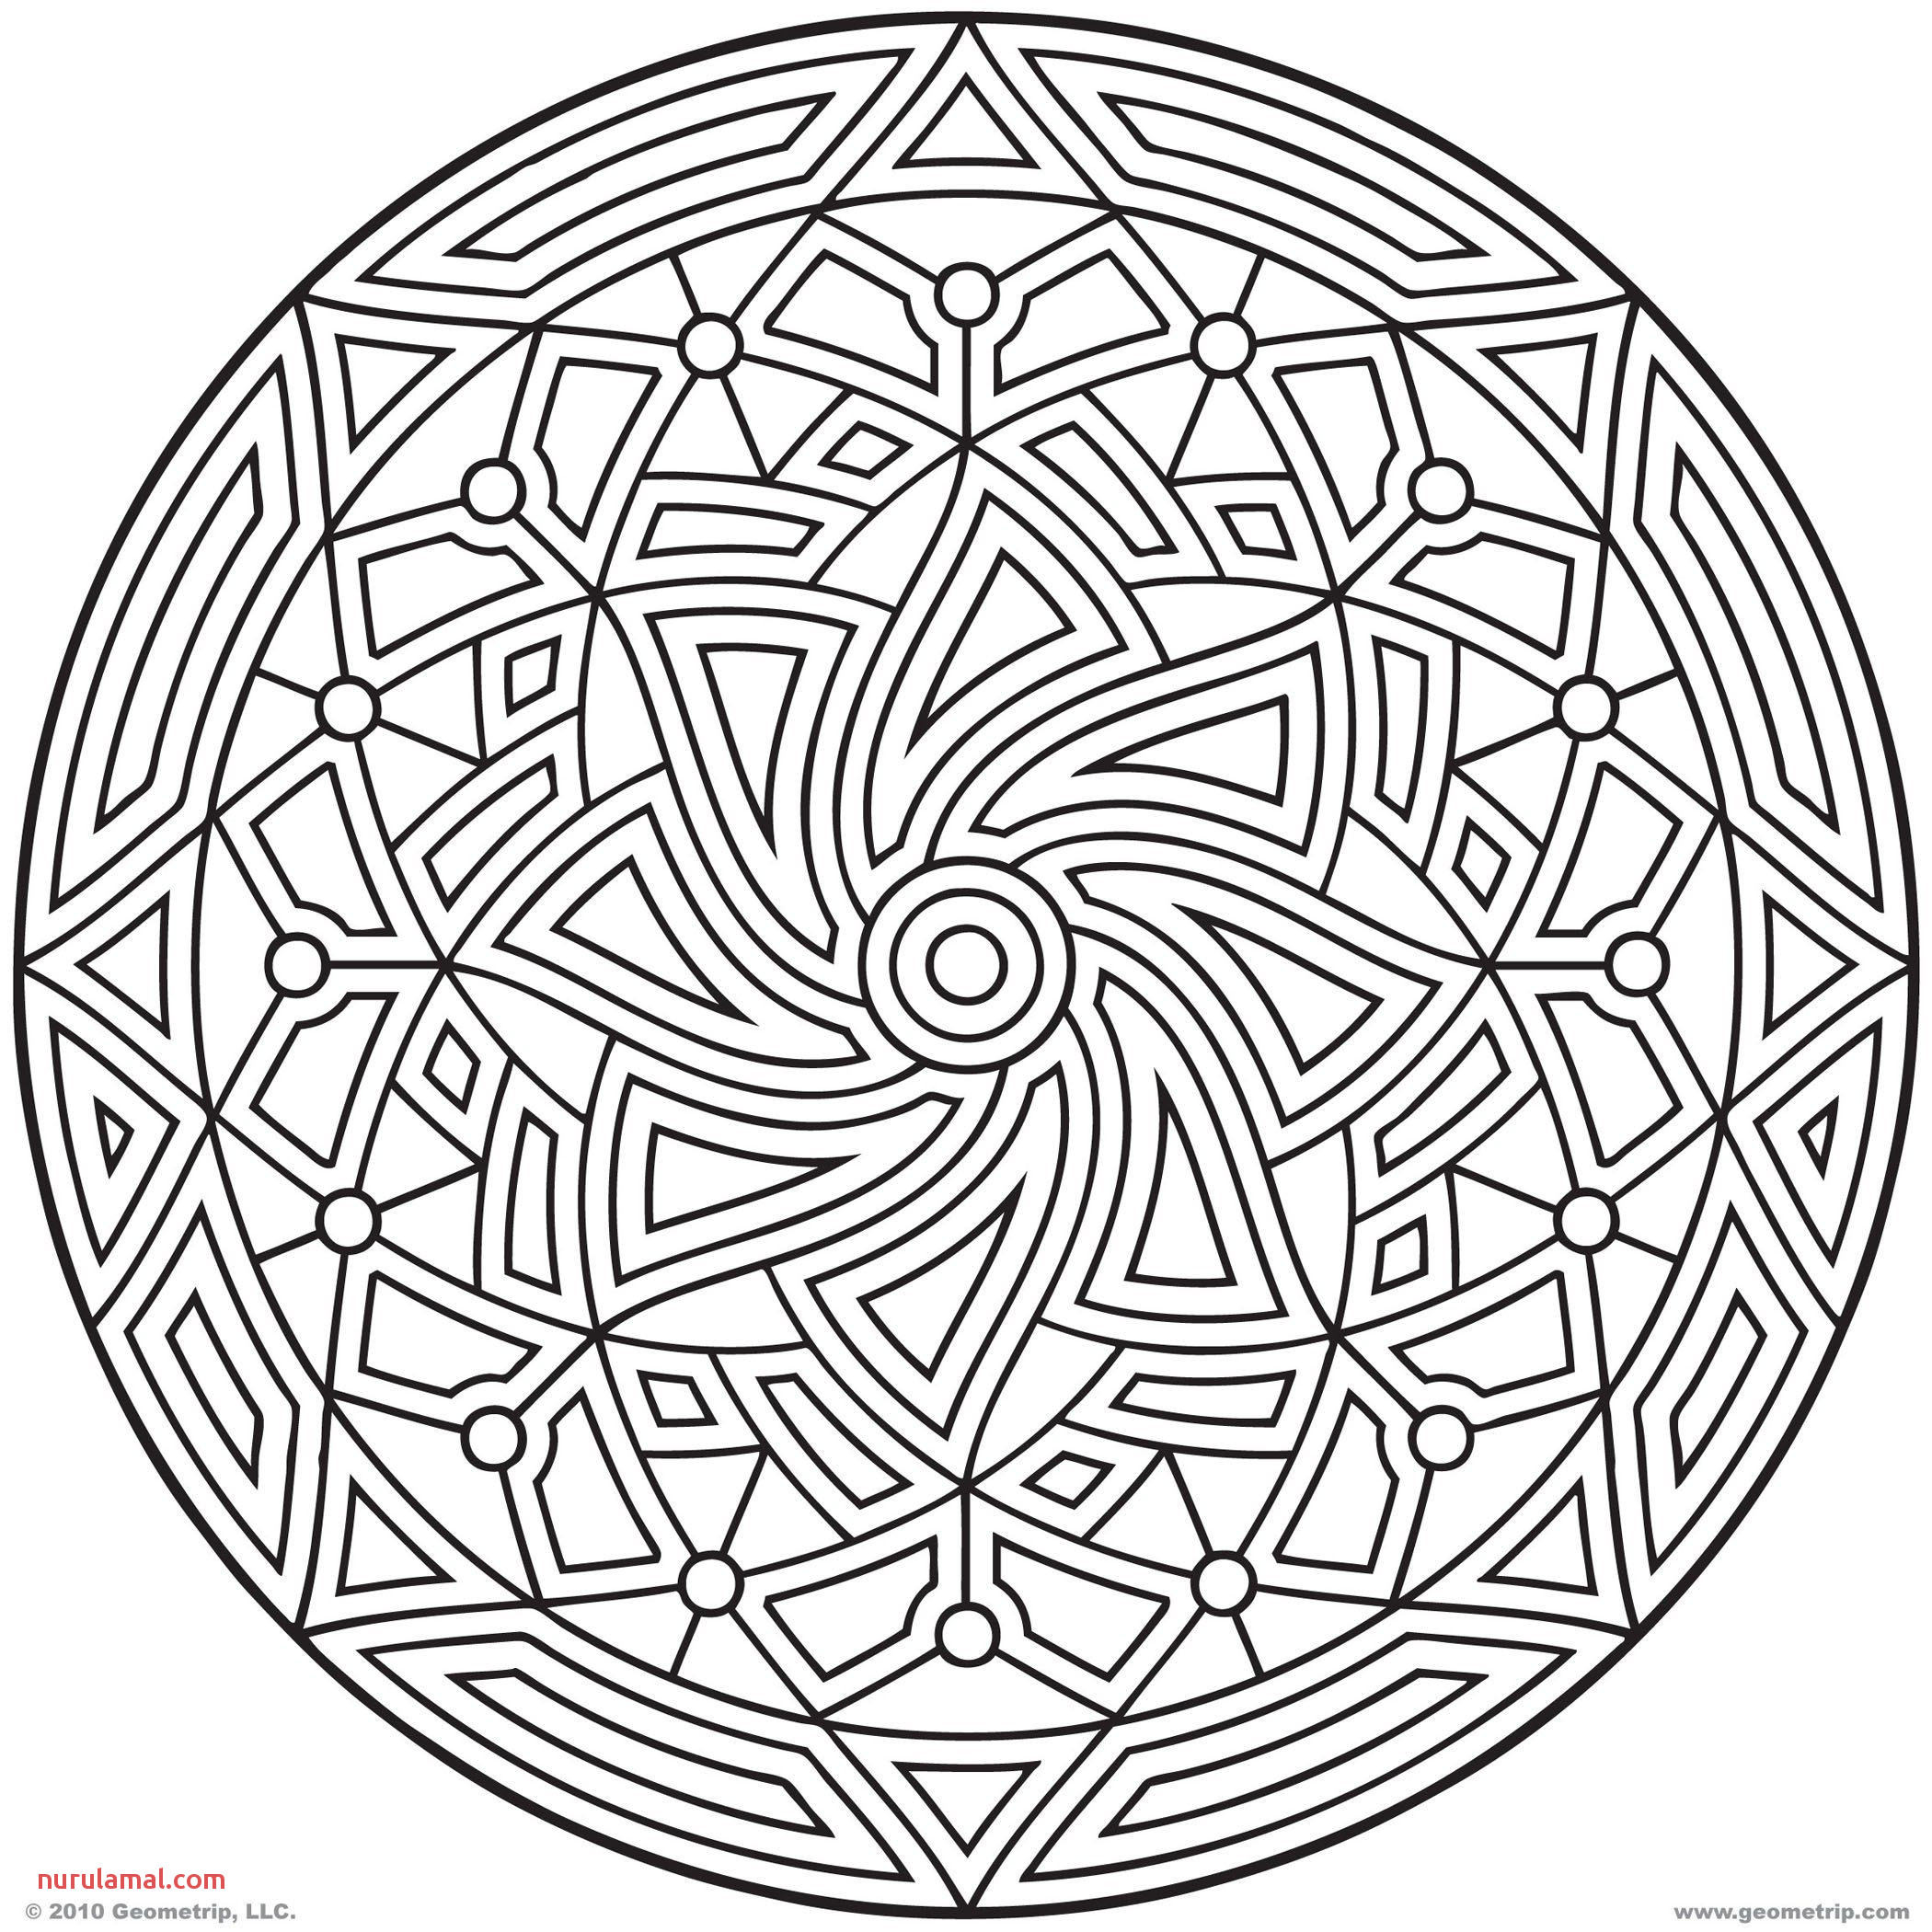 Coloring Pages Free Cool Coloring for Teenagers Best Teens